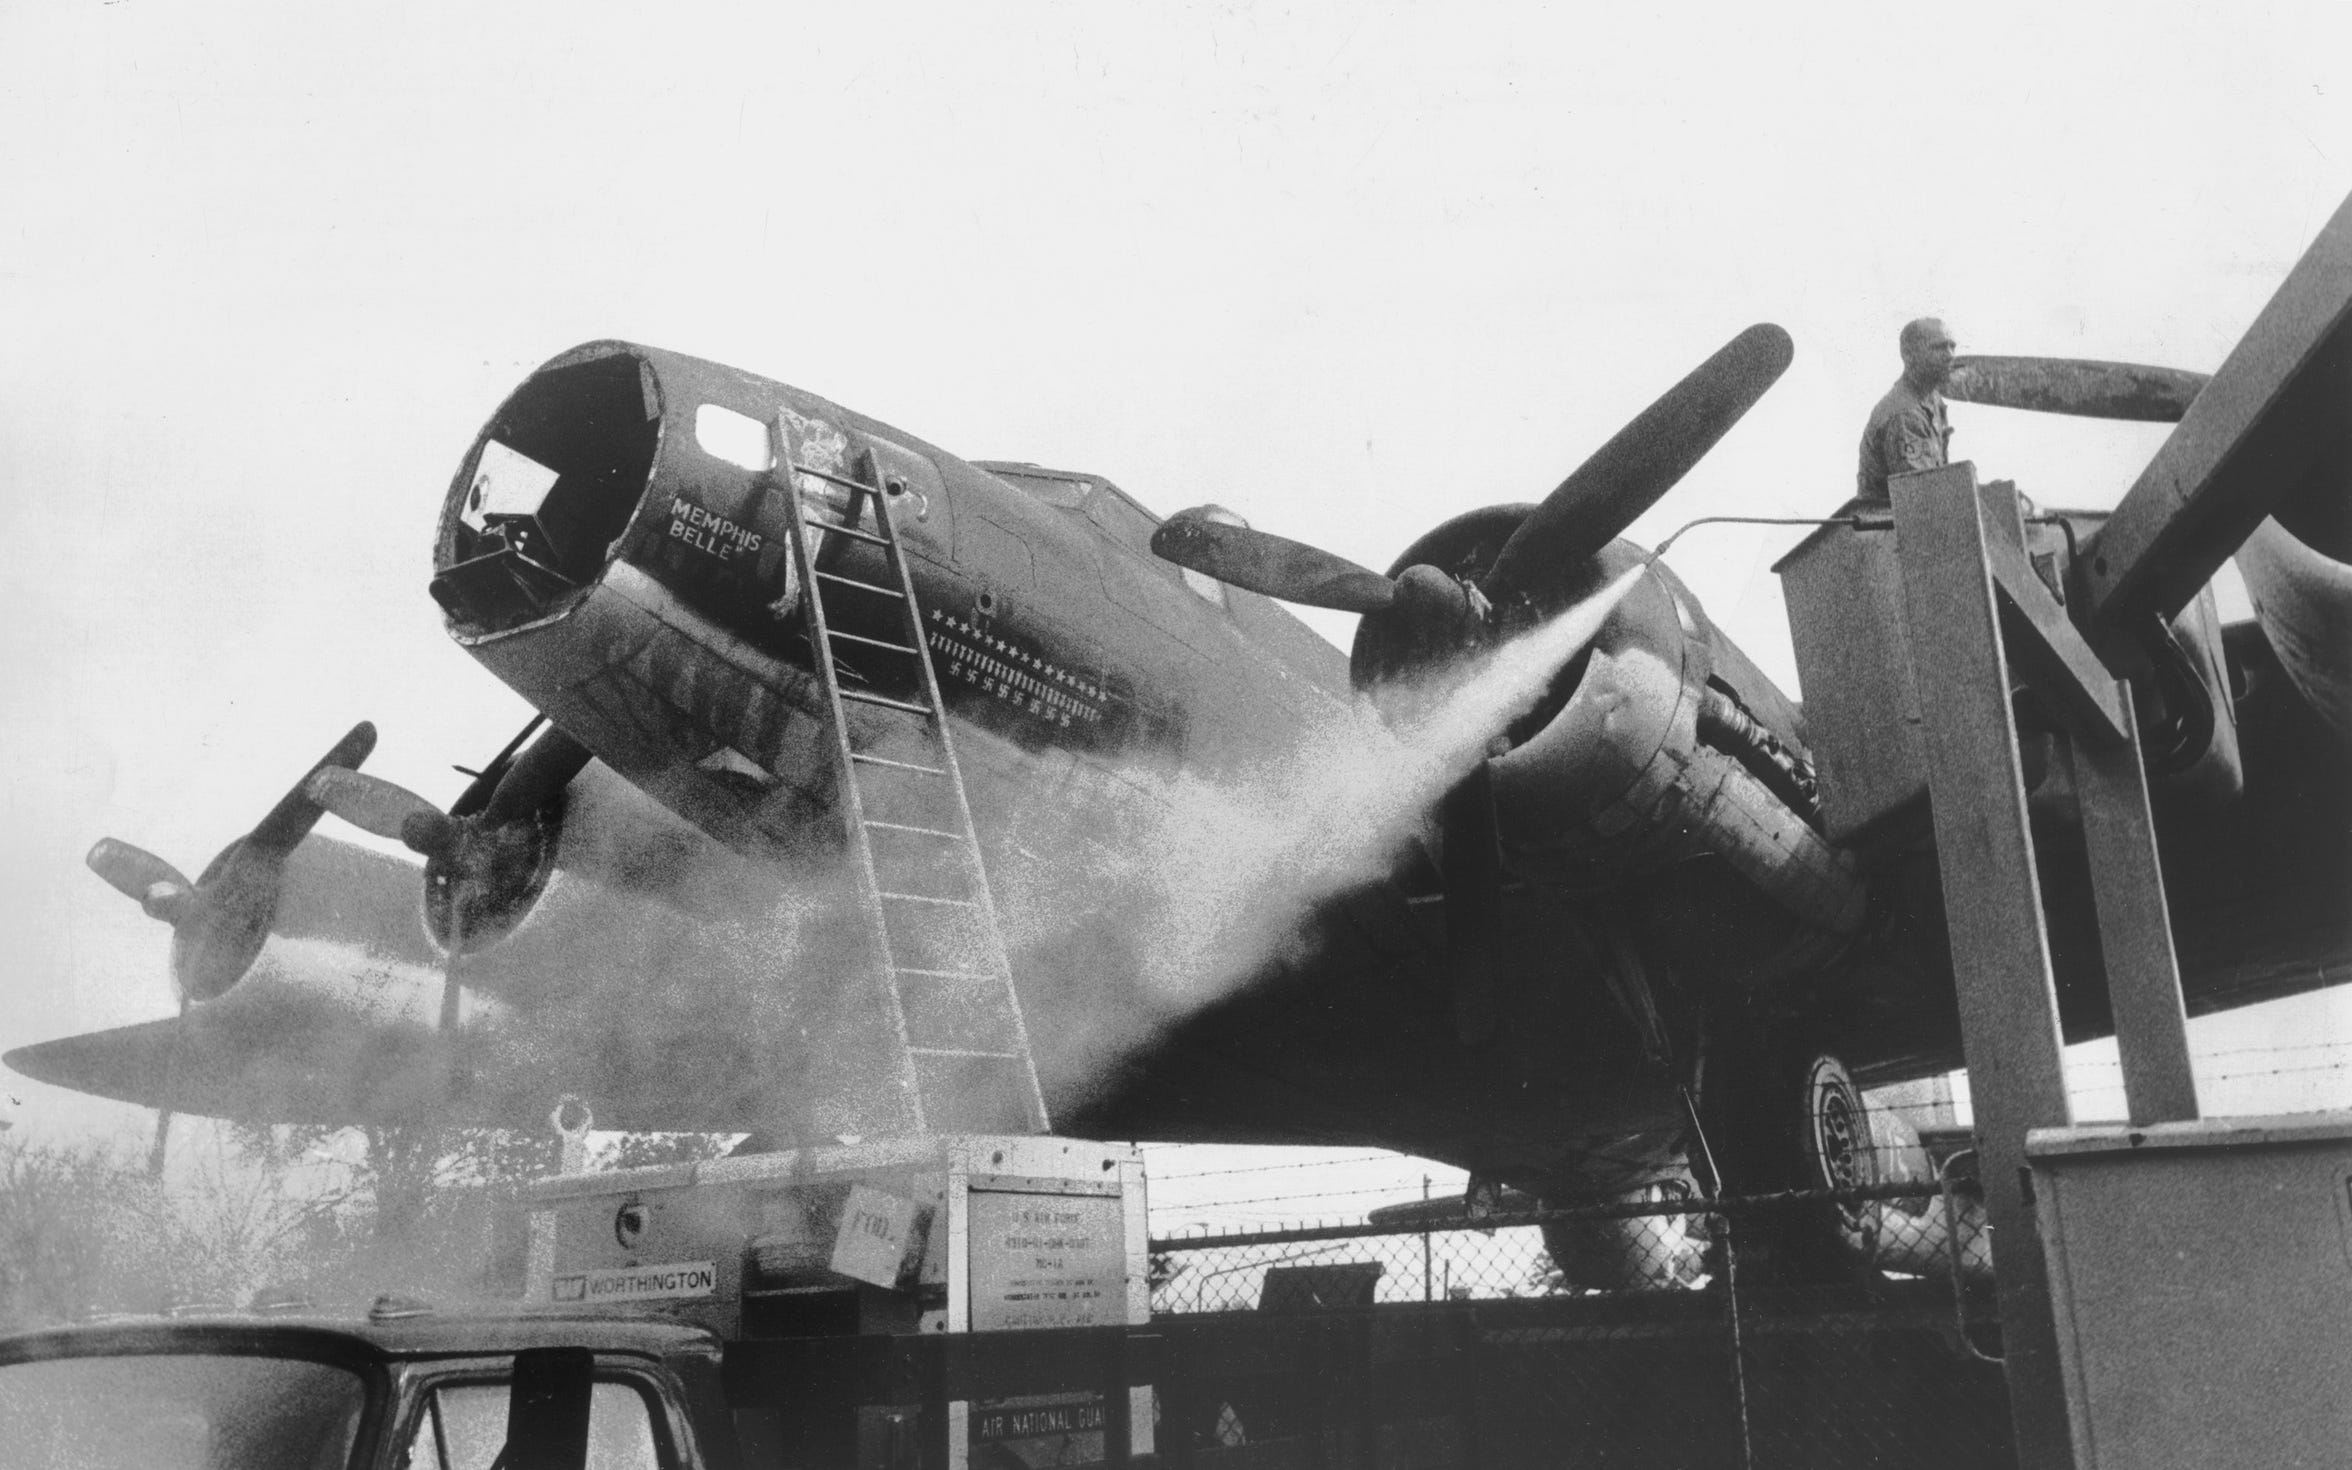 The Memphis Belle gets a bath and sprucing up on November 10, 1966, as it sits atop its pedestal in front of the National Guard Armory at the corner of Central and Hollywood.